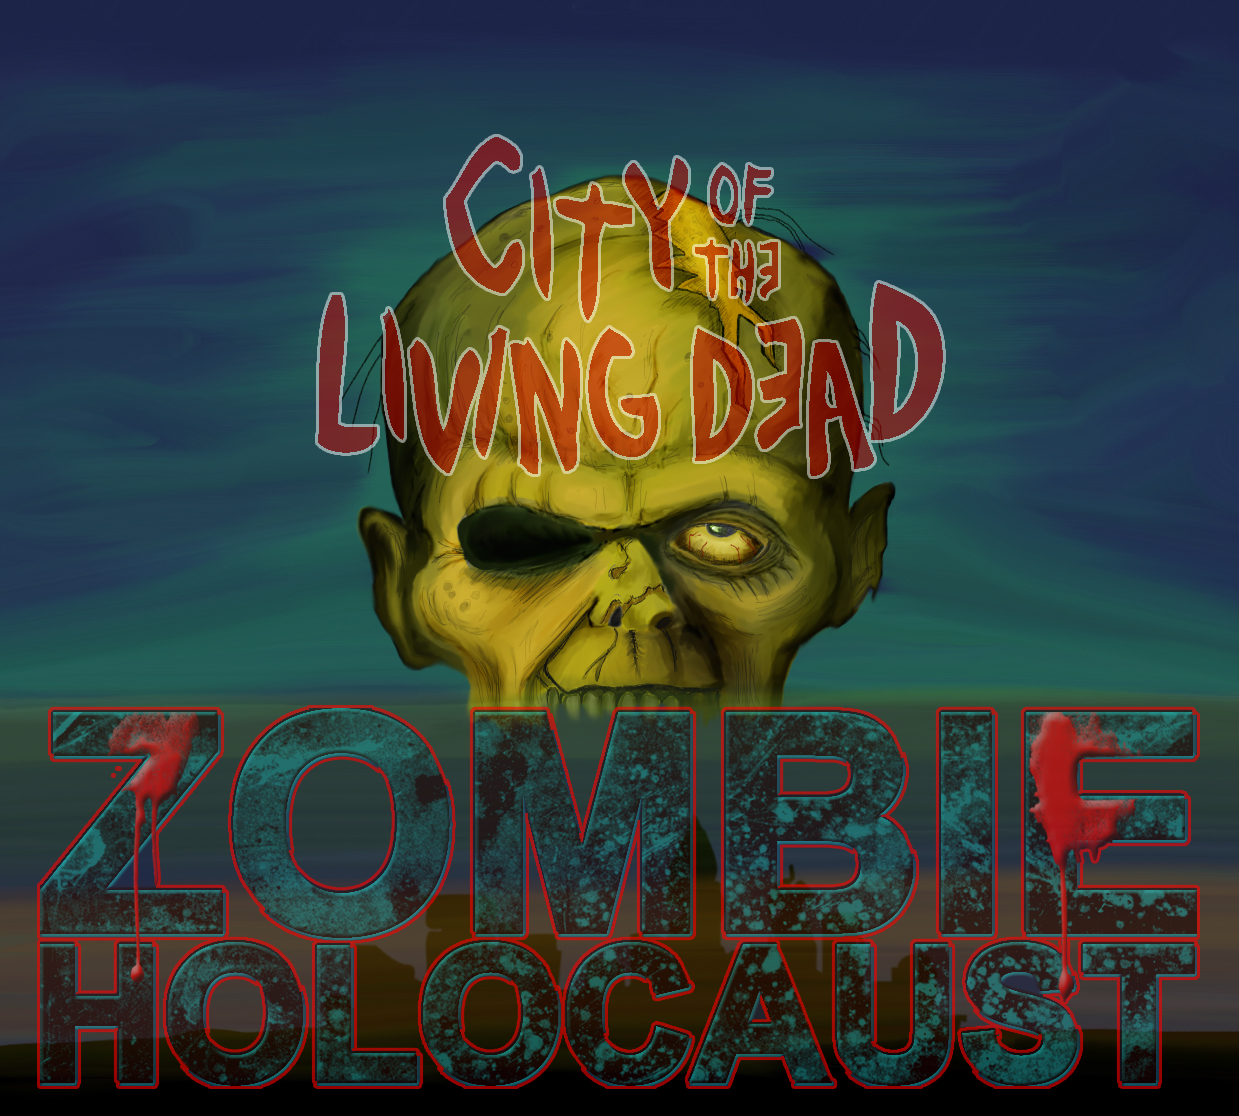 City of the living dead